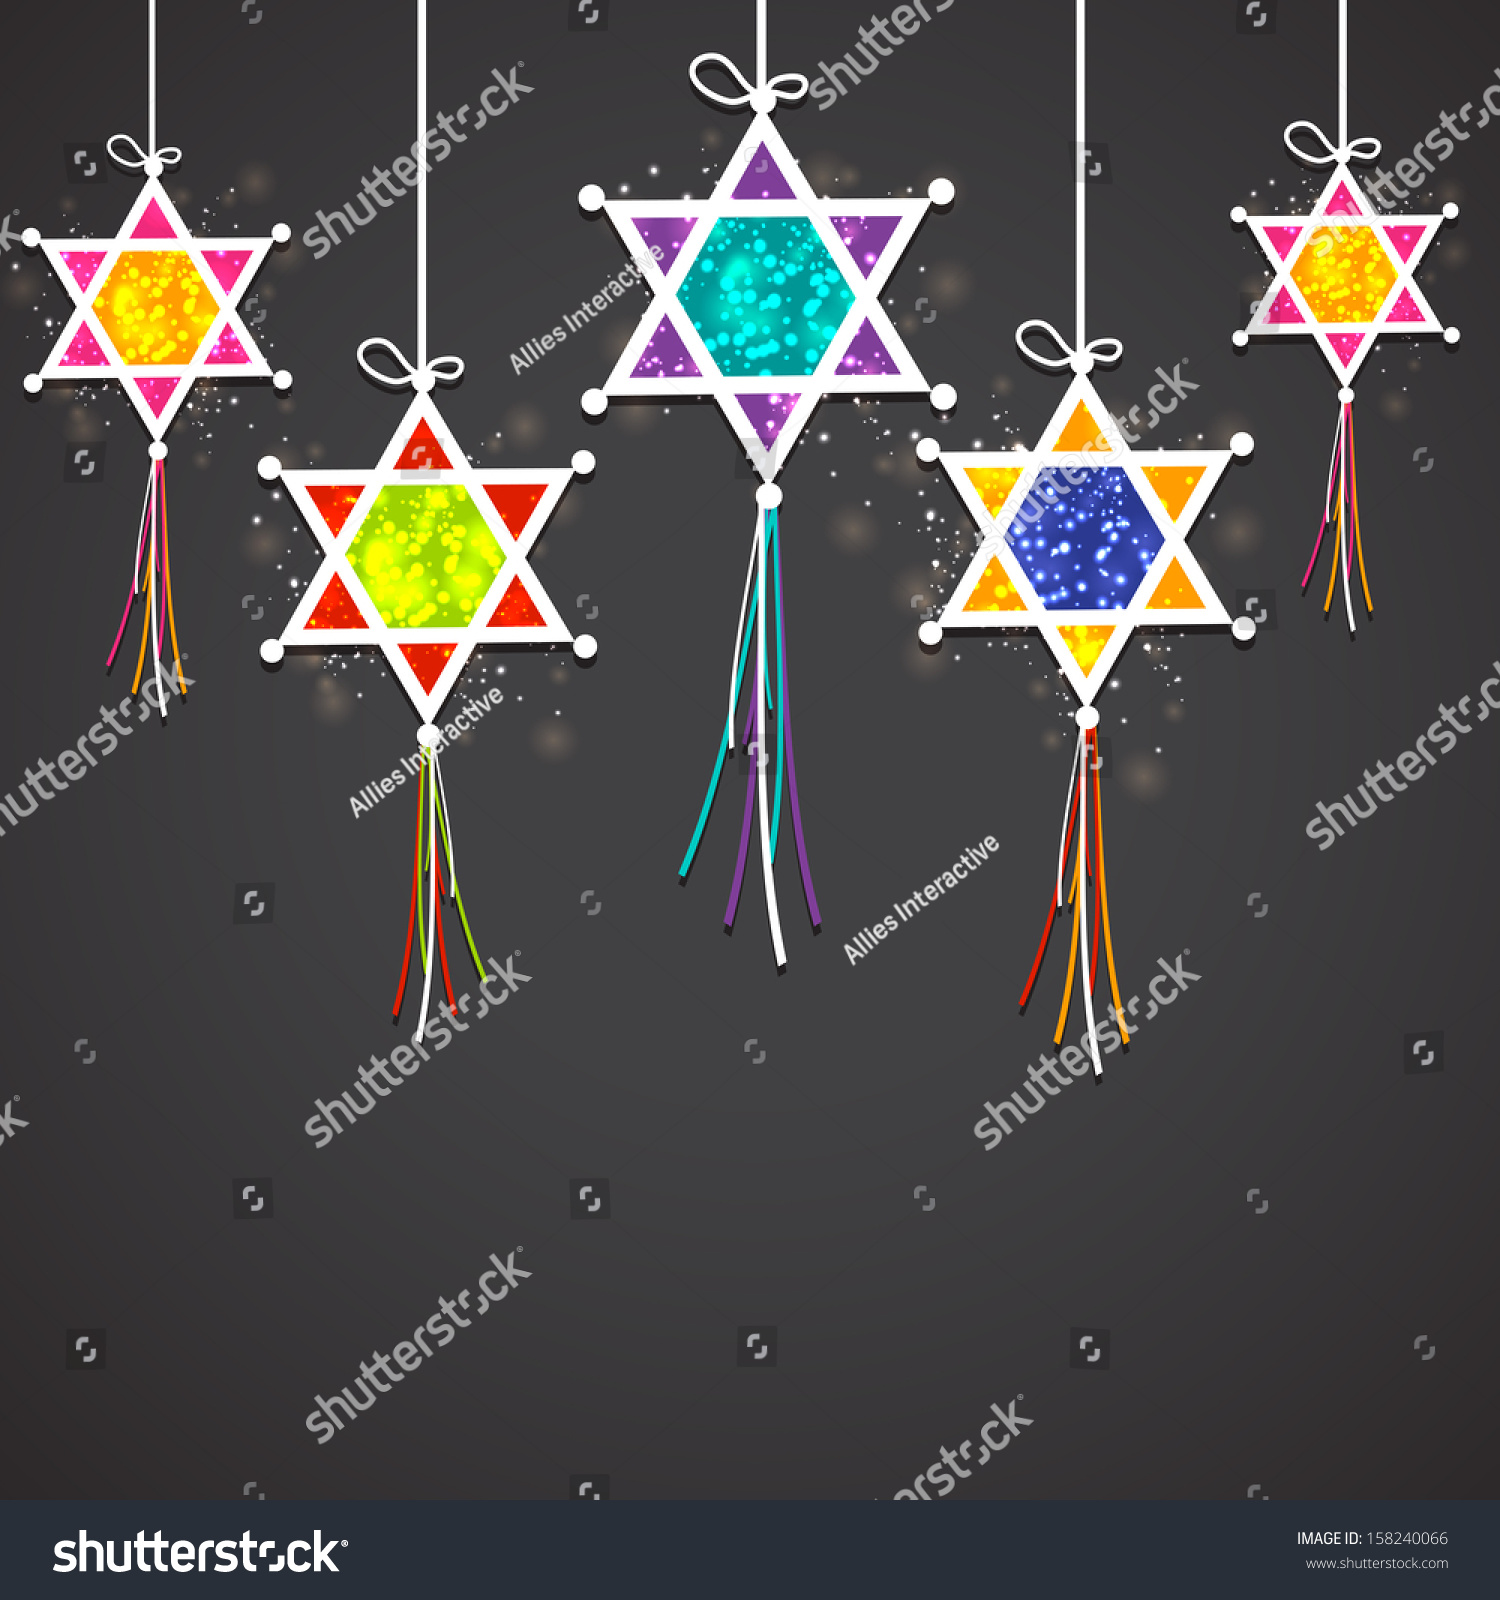 Indian Festival Decoration Indian Festival Of Light Happy Diwali Concept With Hanging